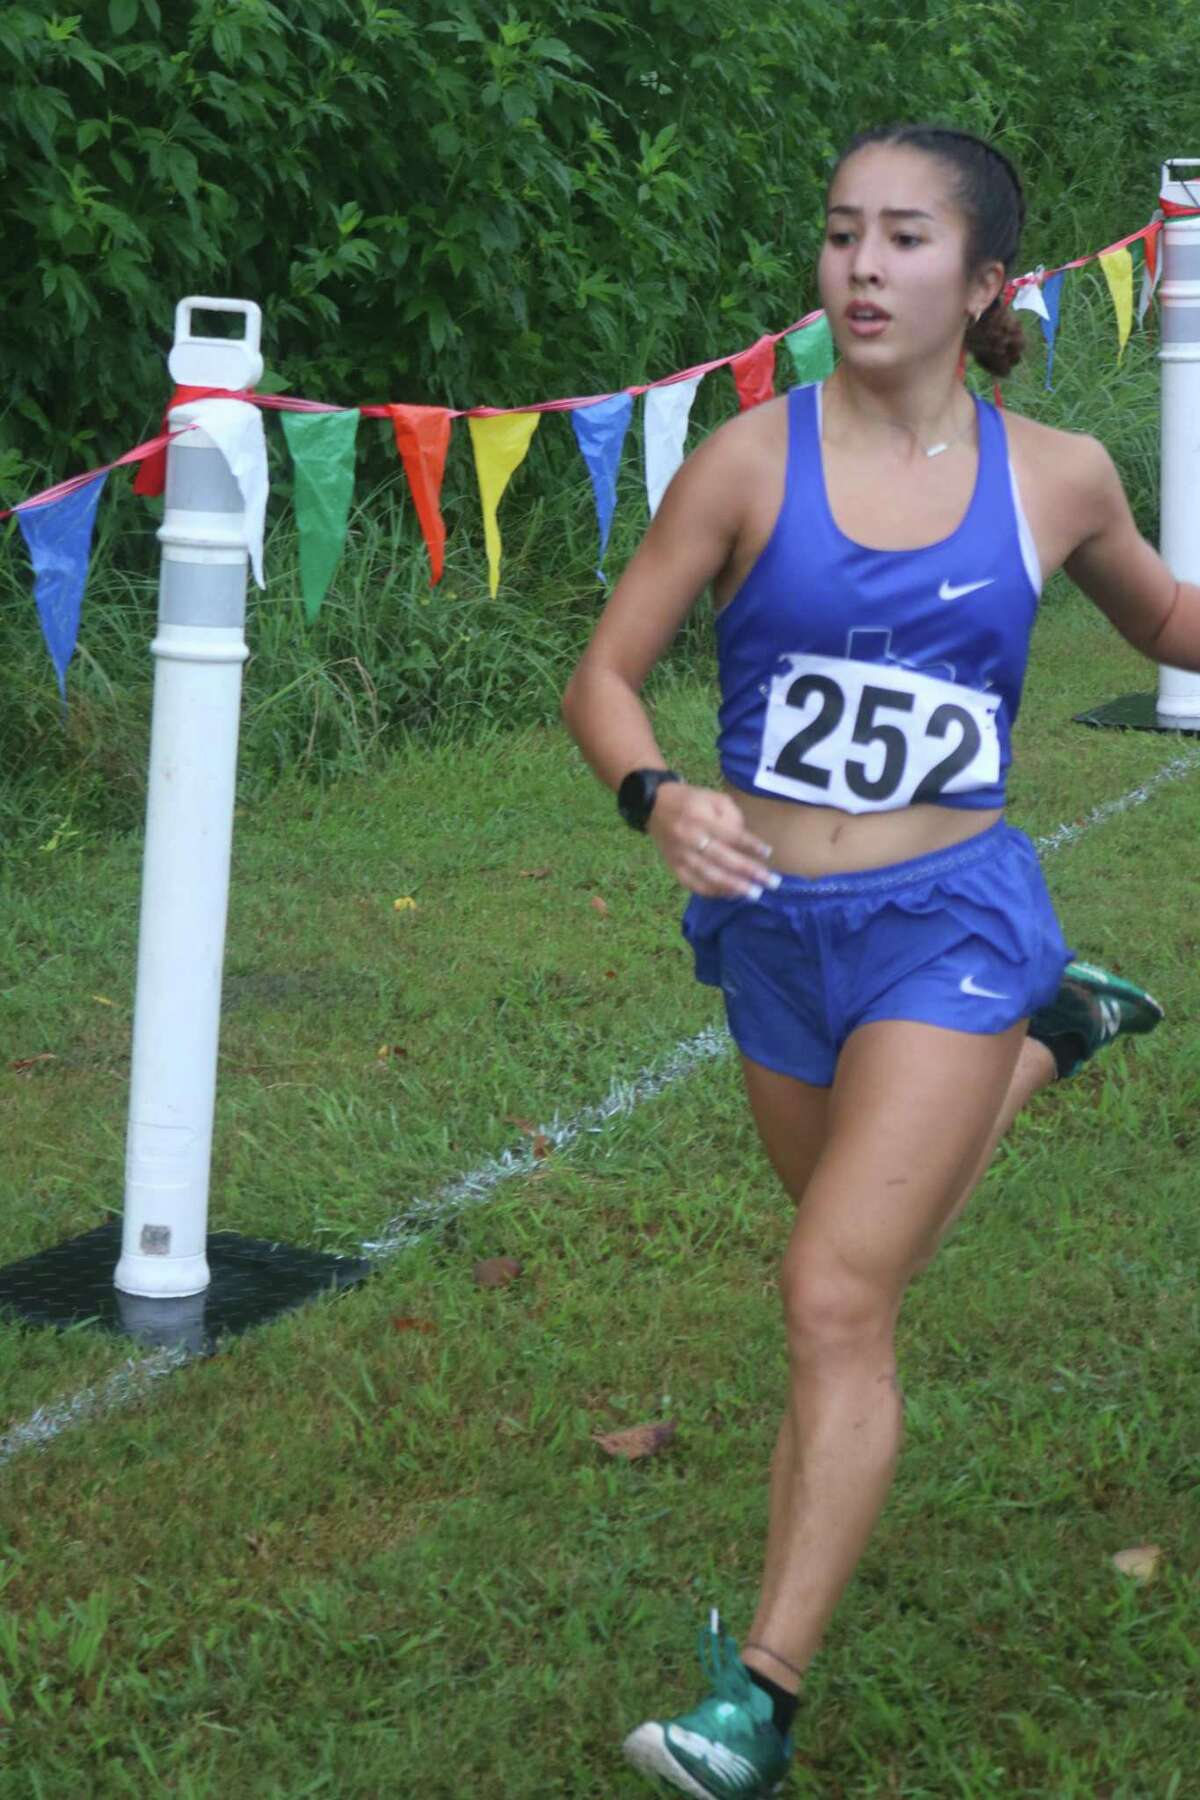 Clear Springs' Ami Clark prepares to reach the finish line, securing her first-place effort at last Friday morning's Clear Creek Invitational. She secured the time of 20:16 in less than ideal running conditions.